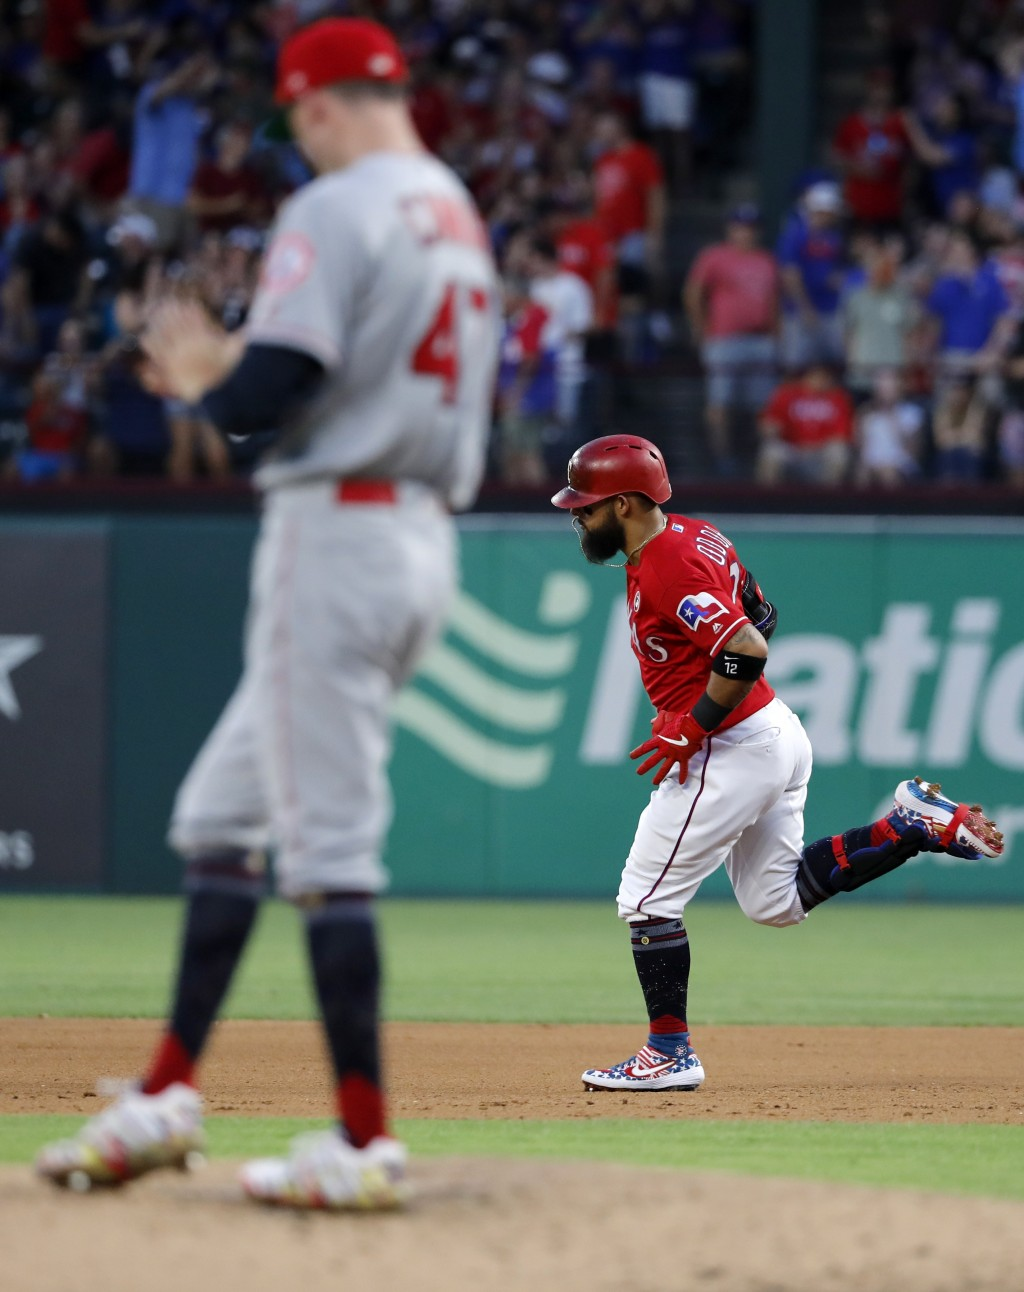 Los Angeles Angels starting pitcher Griffin Canning (47) stands on the mound as Texas Rangers' Rougned Odor (12) rounds the bases after hitting a two-